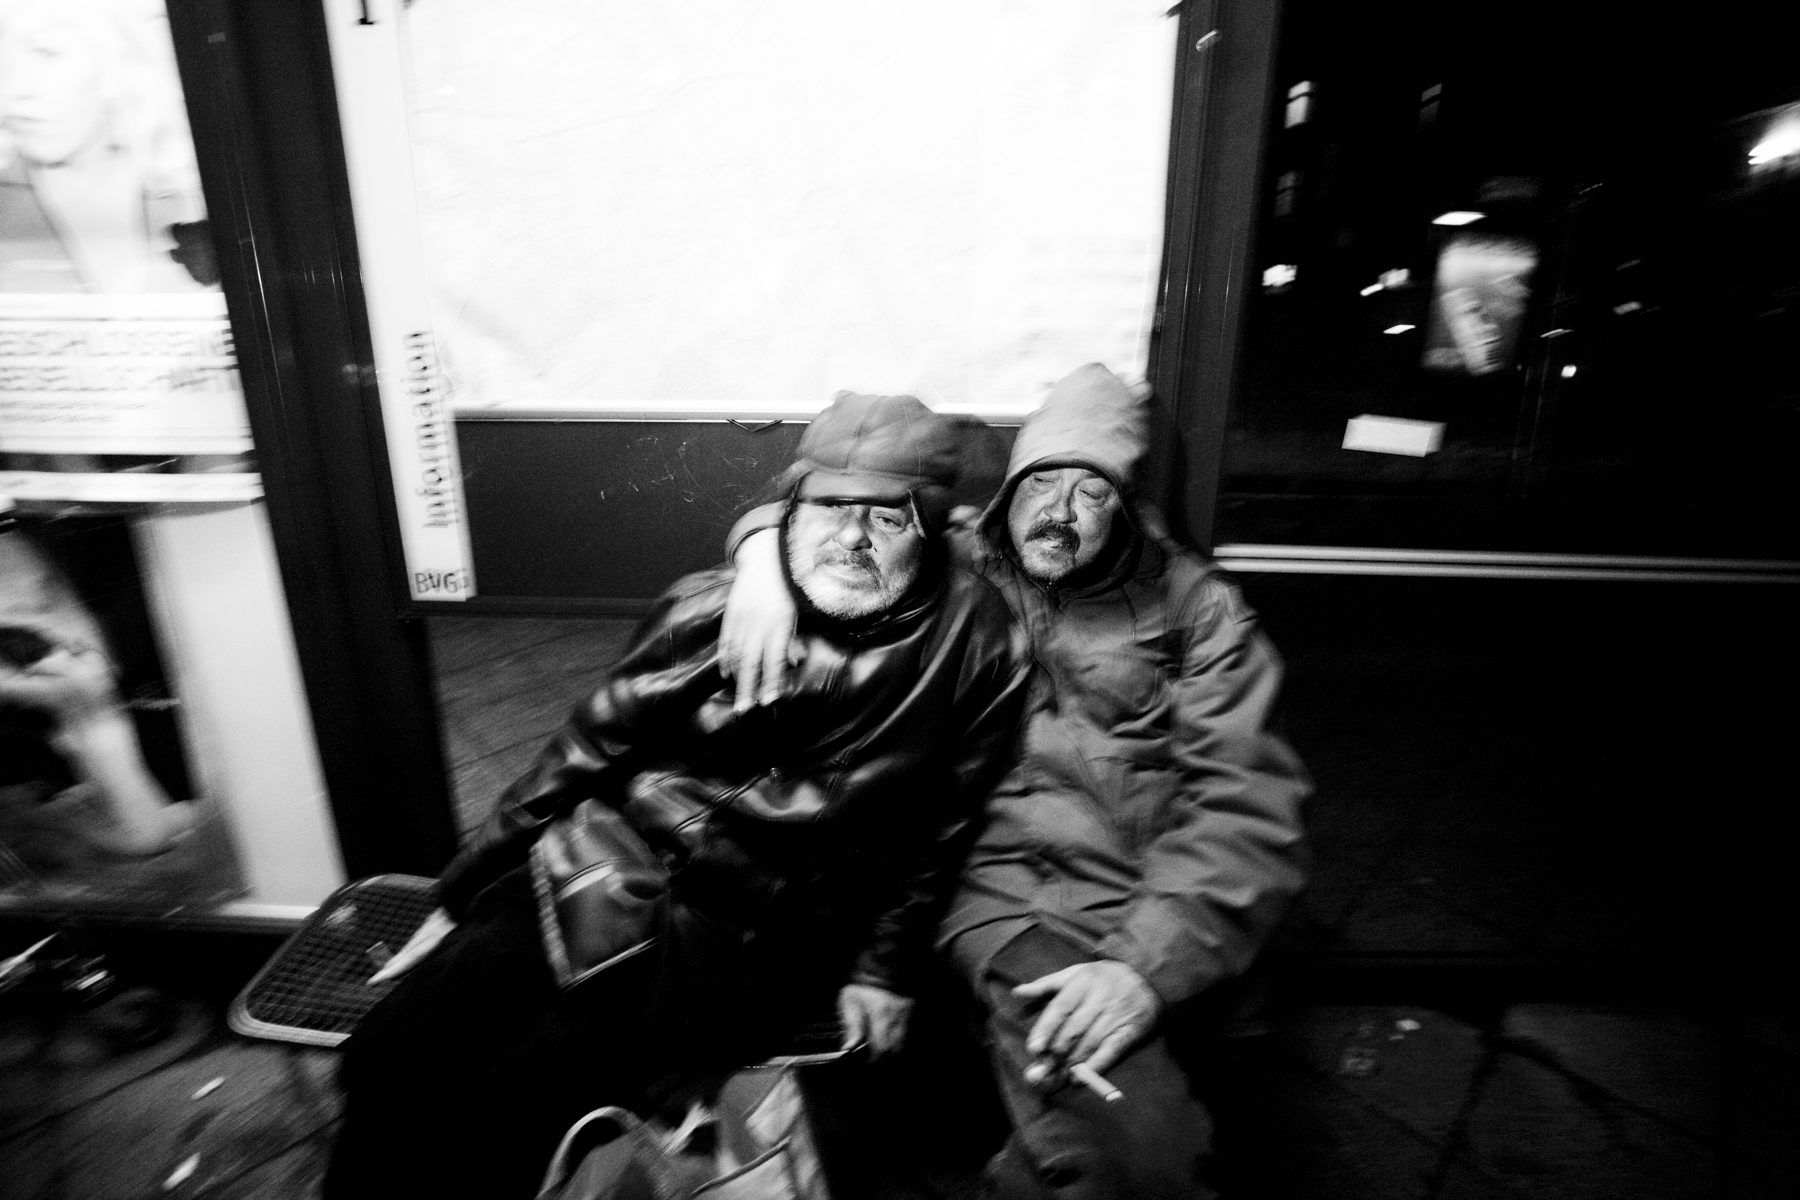 Two friends, homeless, drunk at the bus stop. Berlin 2013.